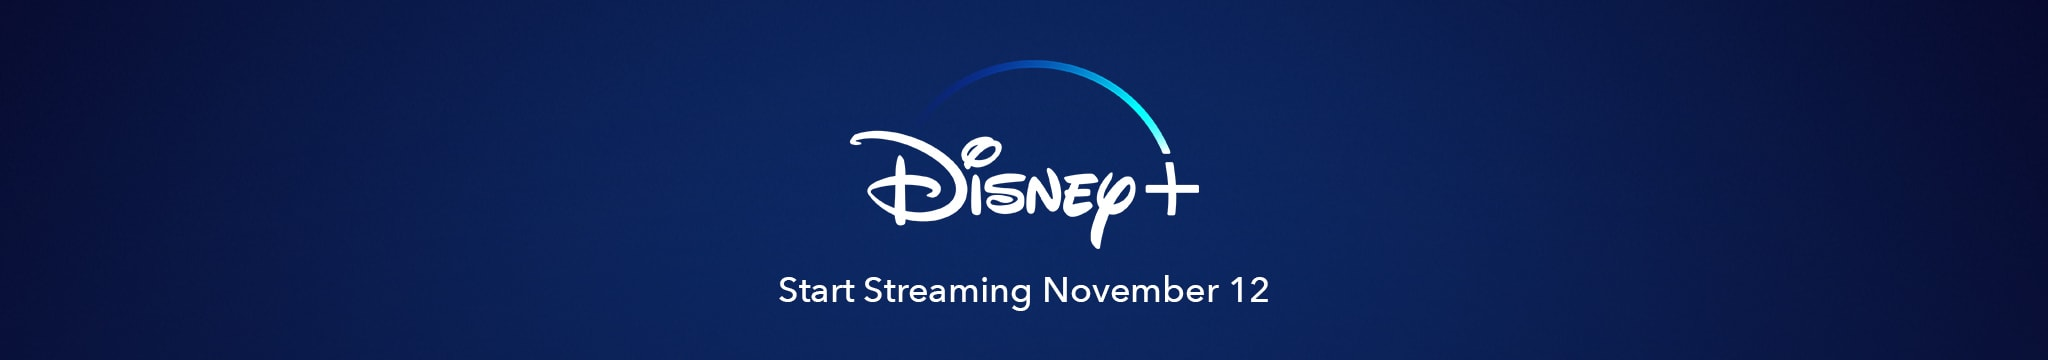 Disney+ Start Streaming November 12